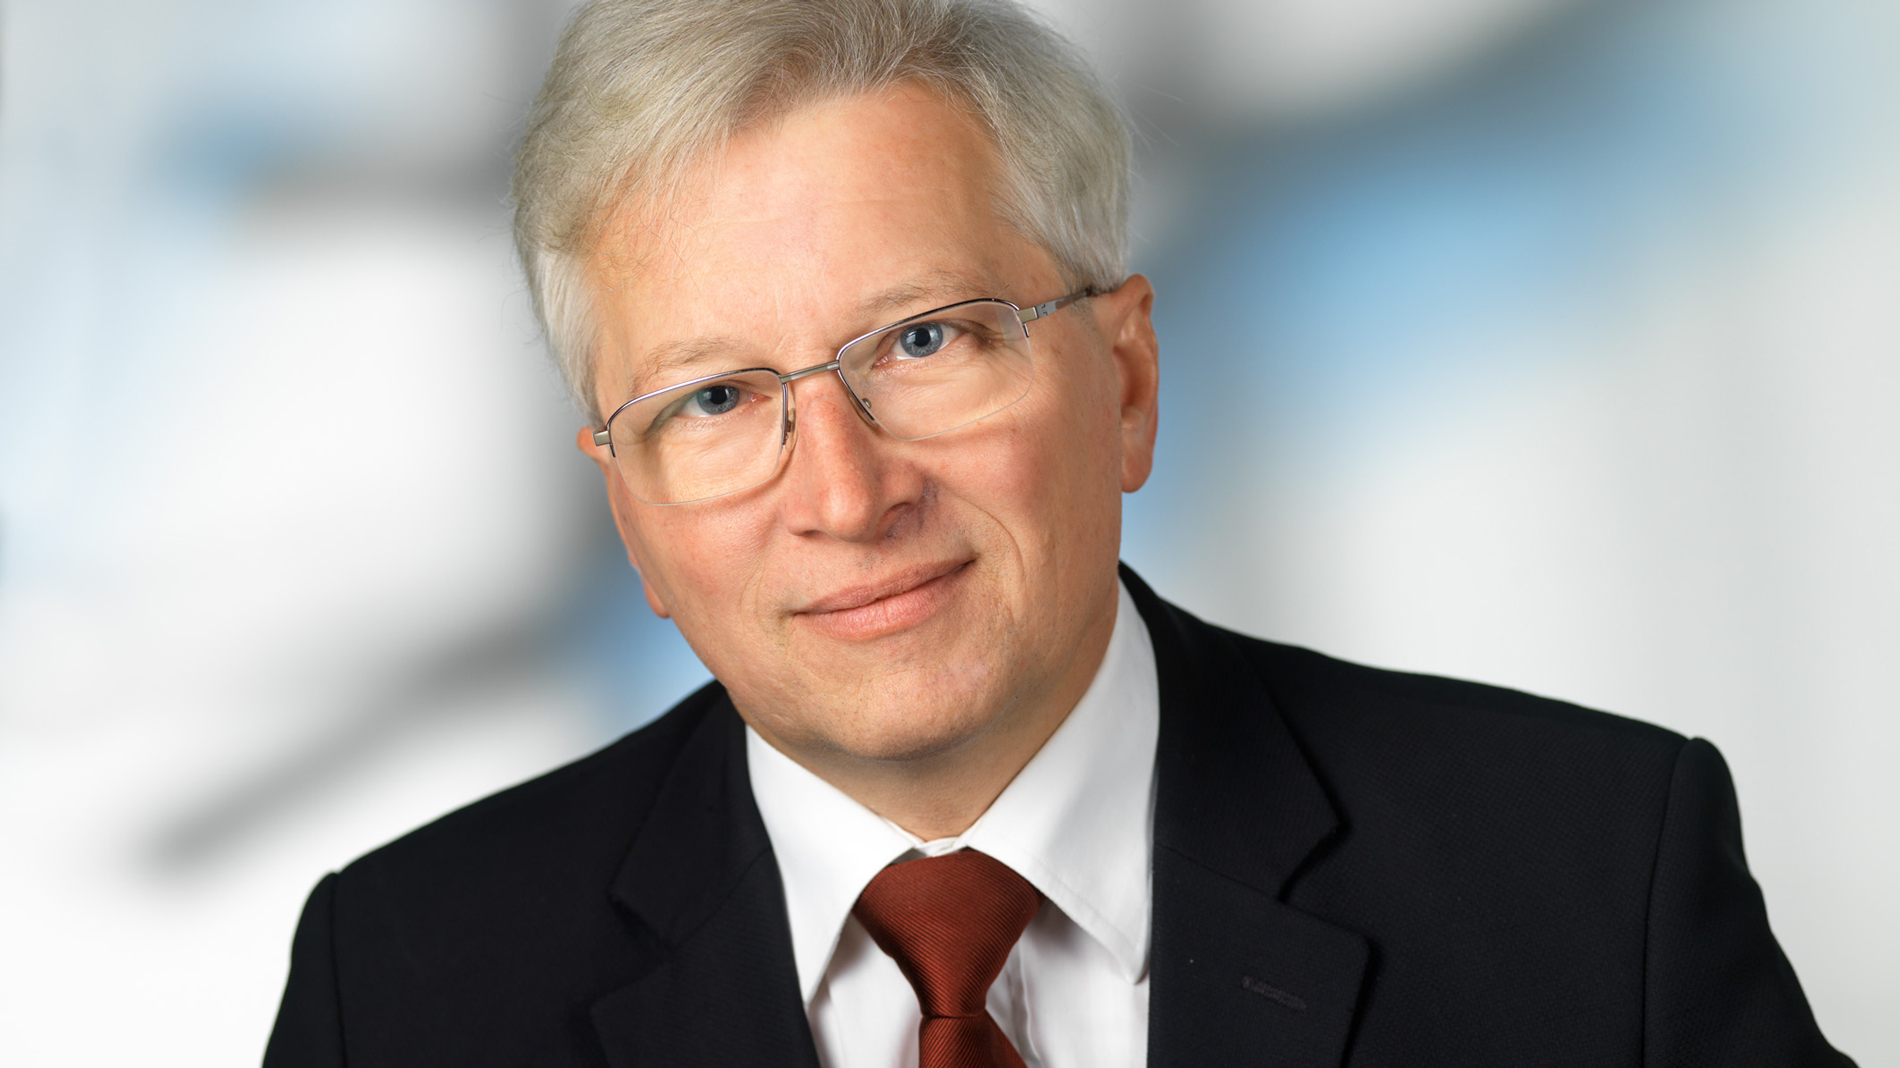 Prof. Dr. Manfred Schrödl, Vienna University of Technology, Austria